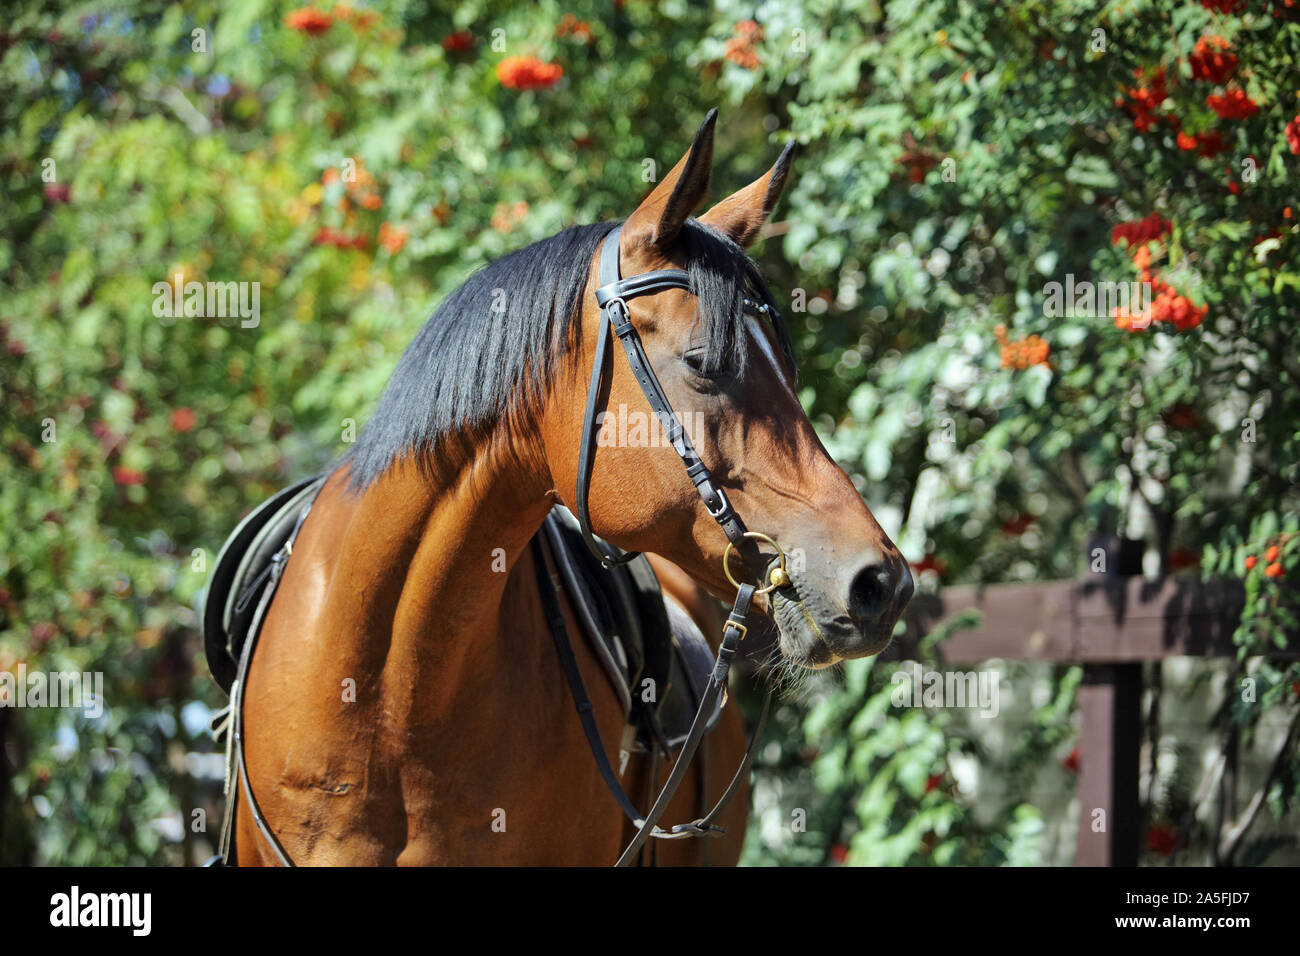 Purebred Arabian Horse Portrait Of A Bay Mare With Jewelry Bridle In Autumn Nature Background Stock Photo Alamy